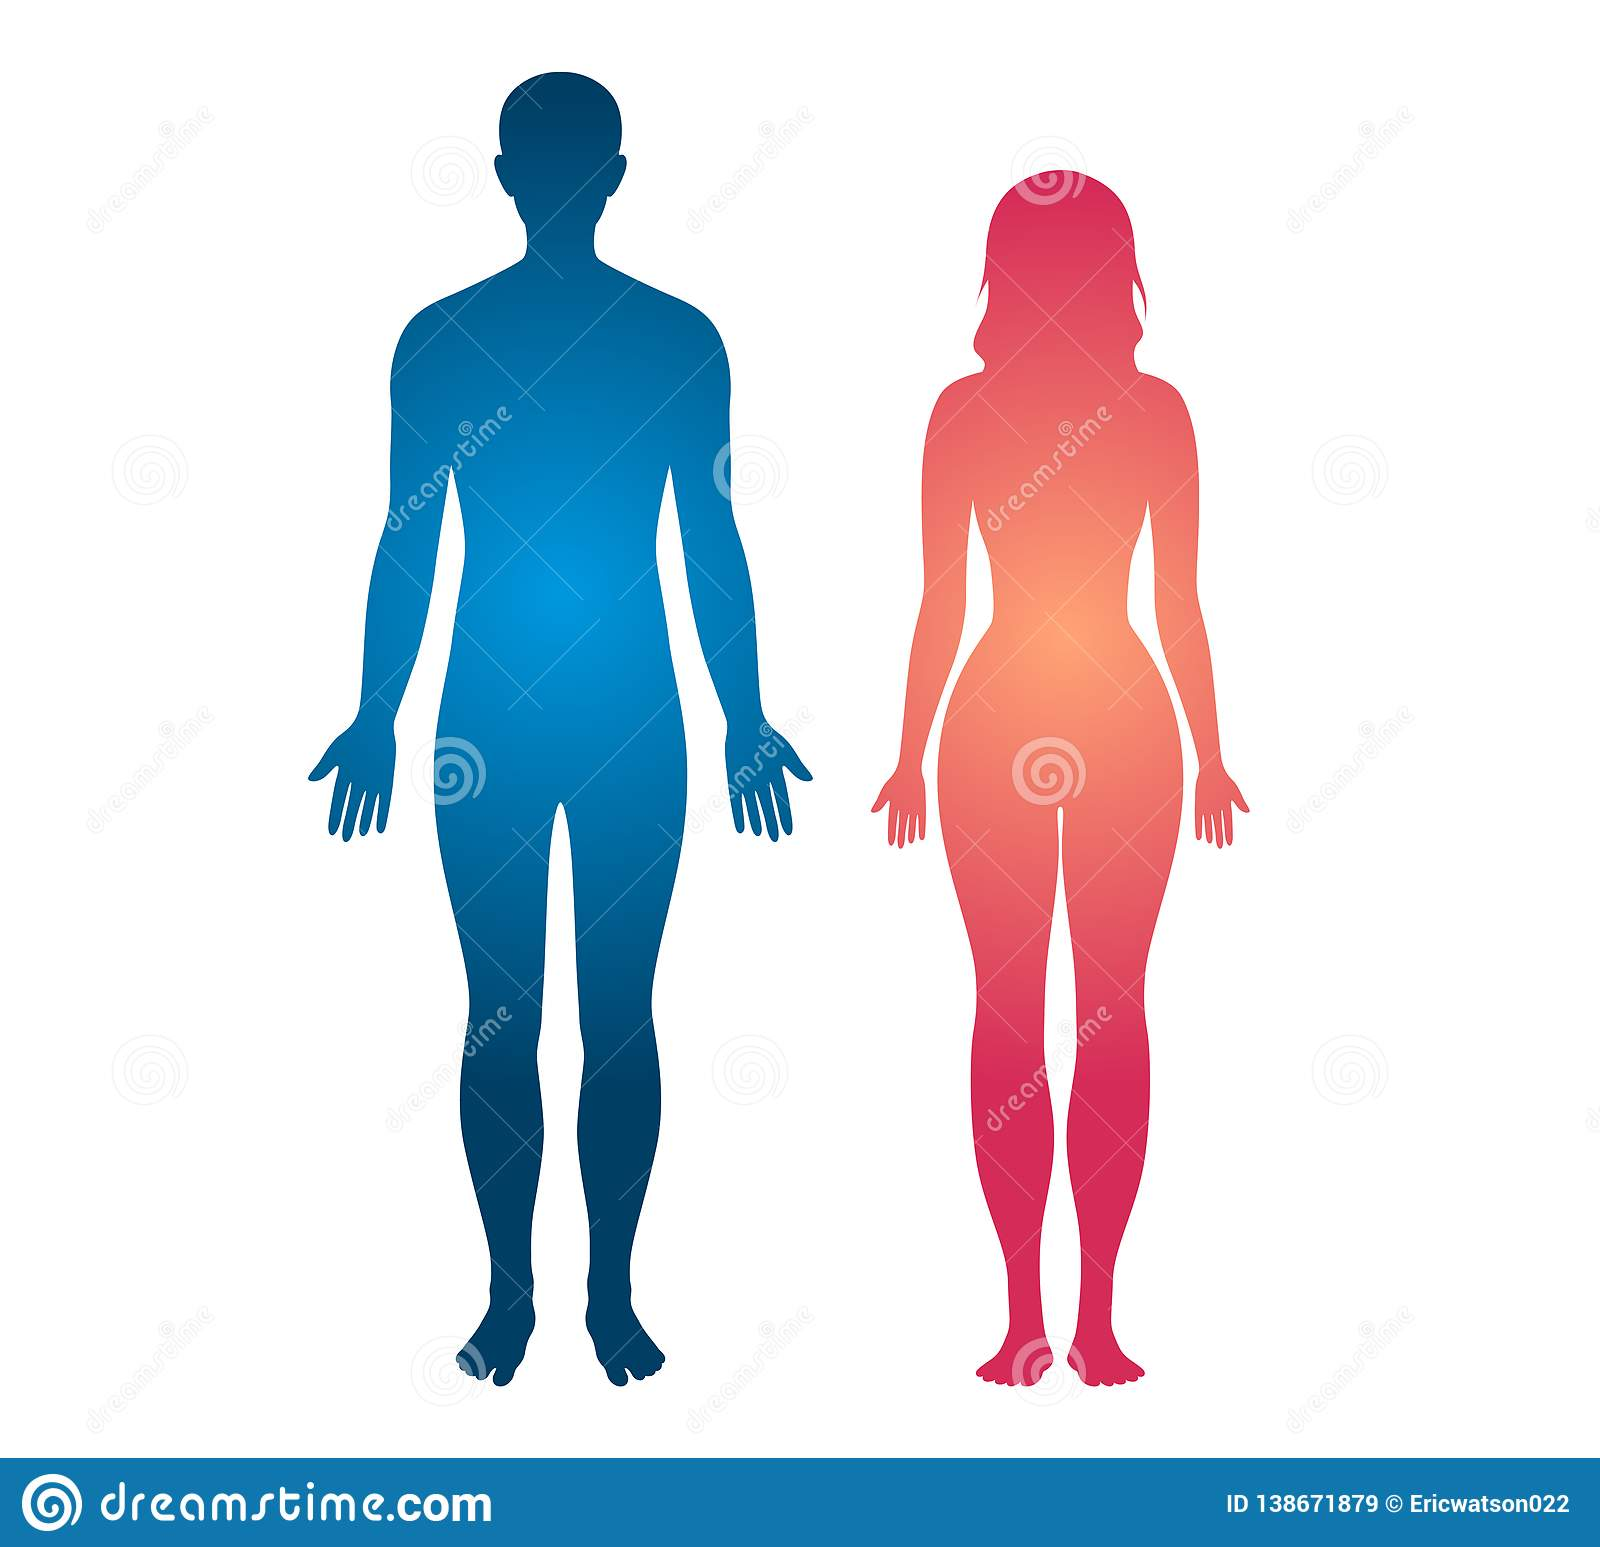 human body stock illustrations 290 514 human body stock illustrations vectors clipart dreamstime https www dreamstime com human body silhouette man women body vector illustration human body silhouette man women body vector illustration white image138671879